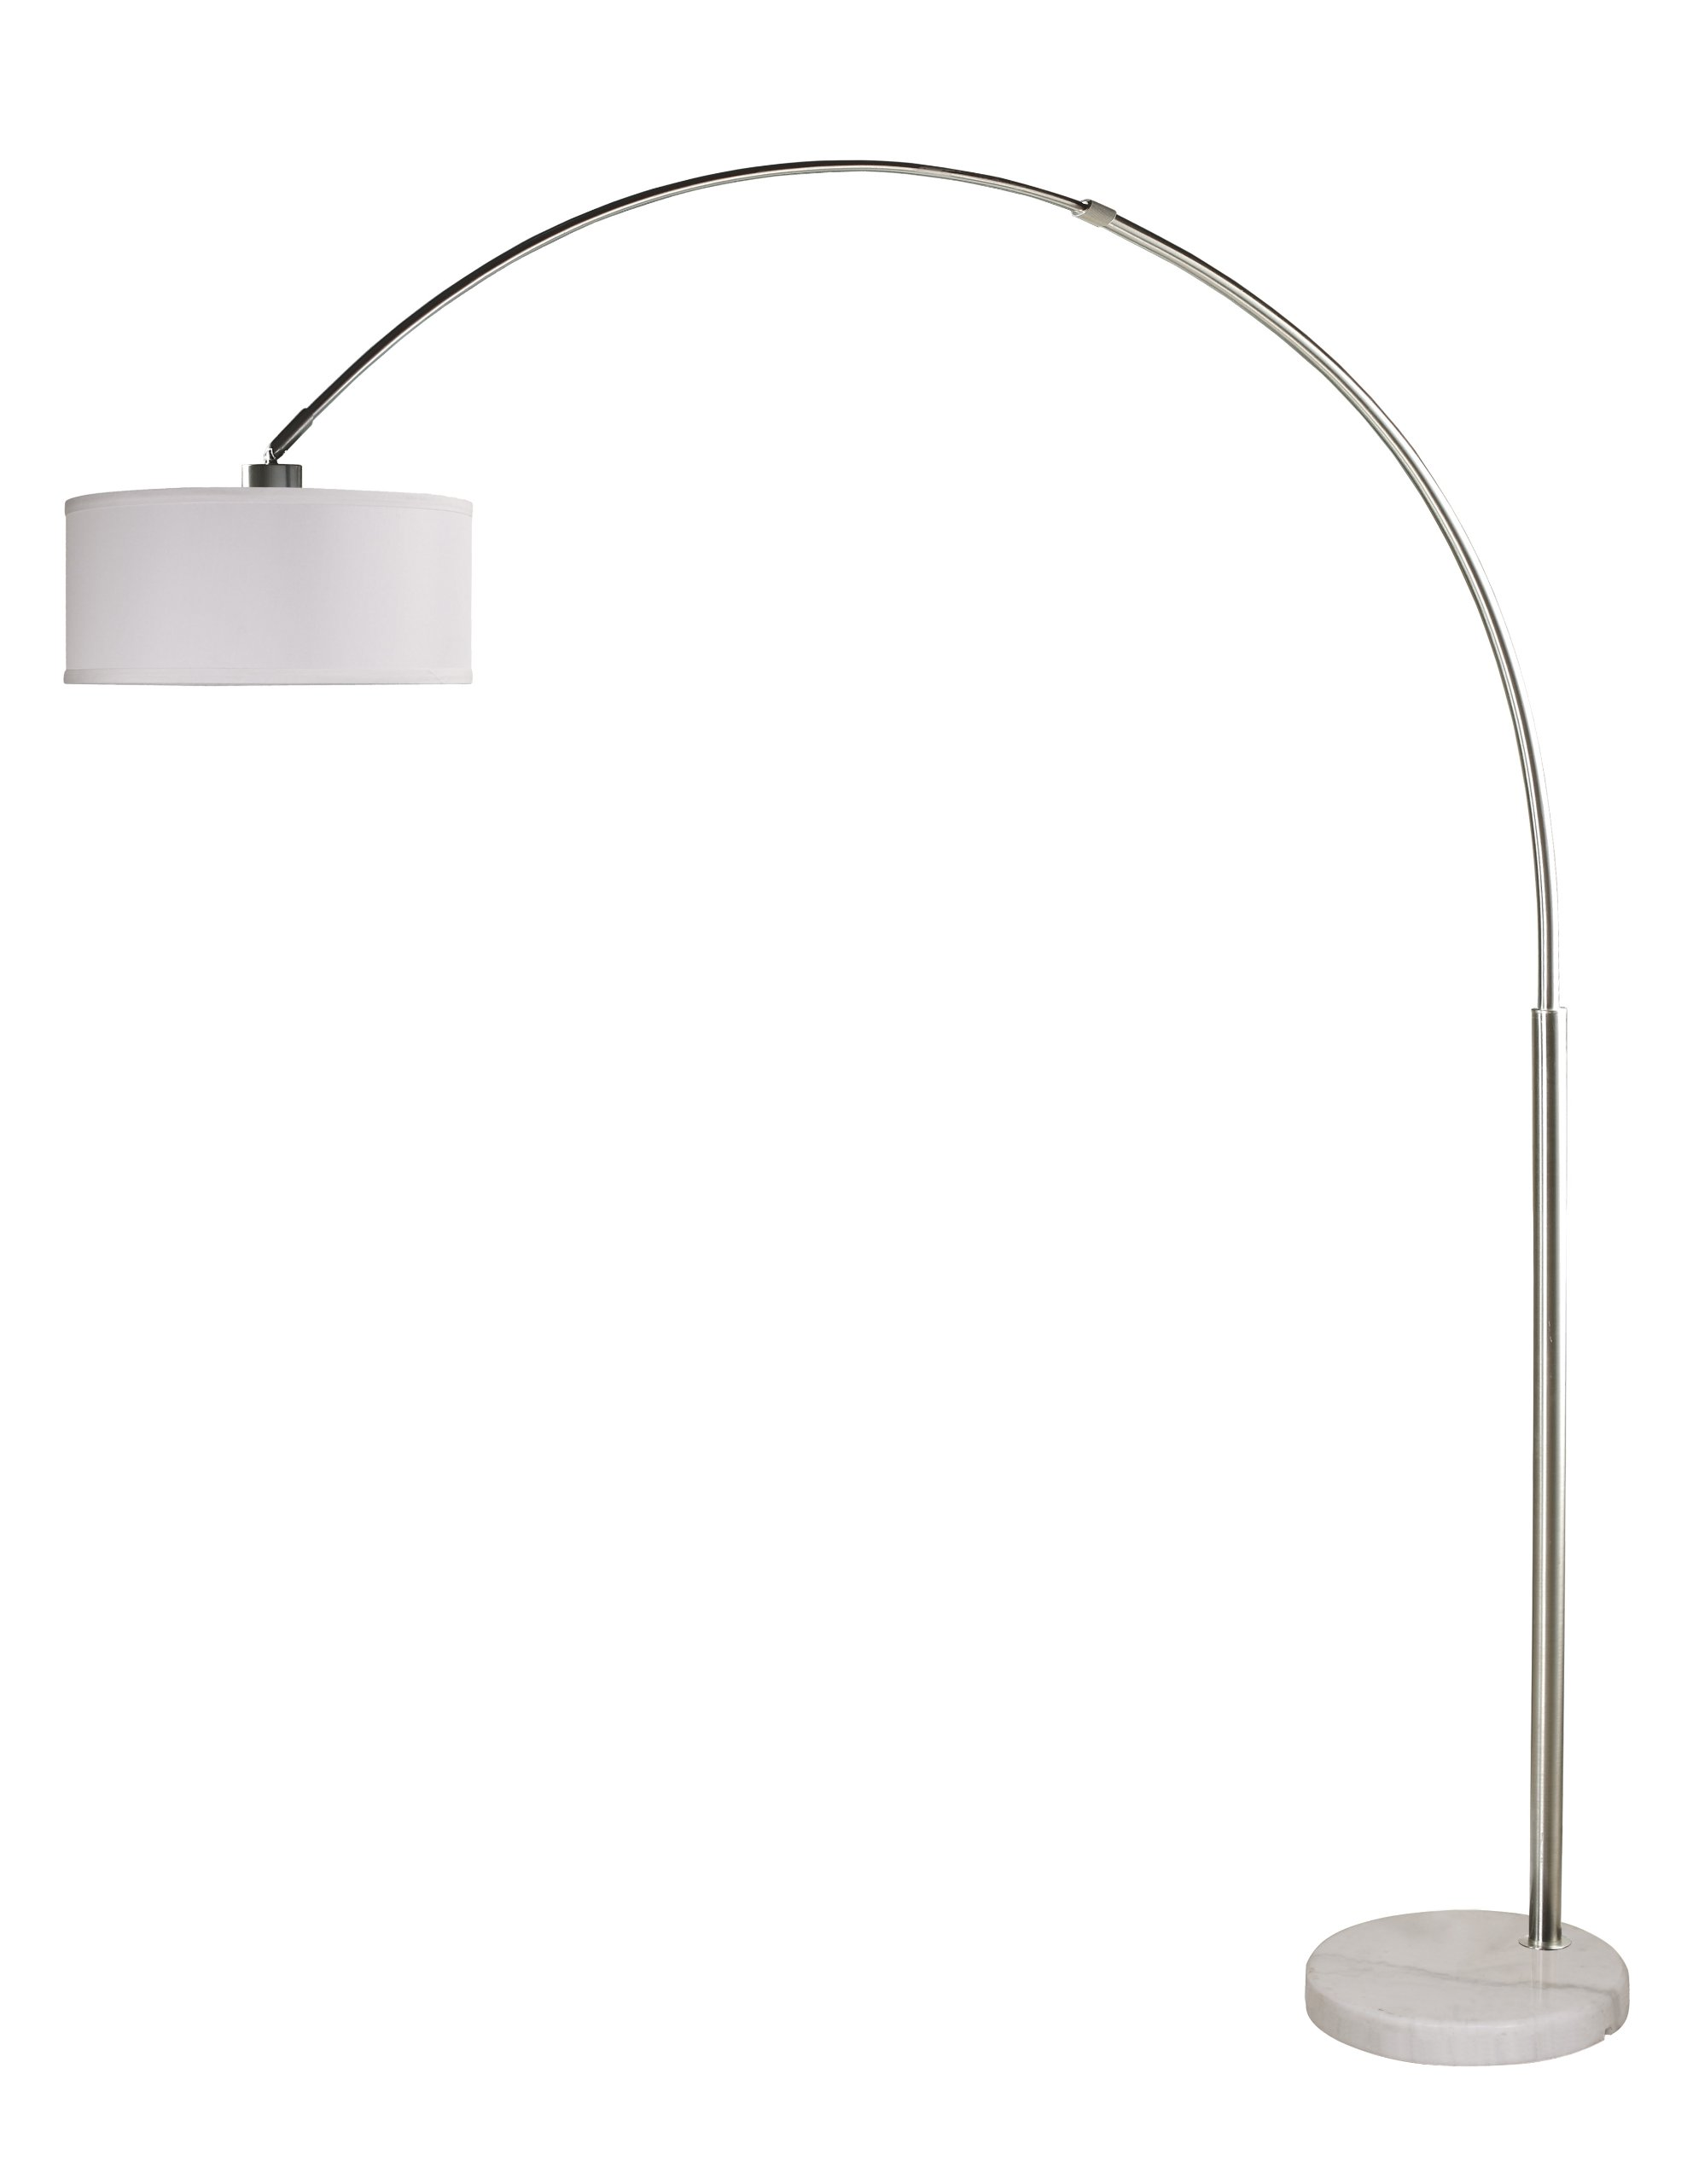 Arch Floor Lamp Stainless Steel Marble Base White Linen Shade Modern Contemporary 6938WH